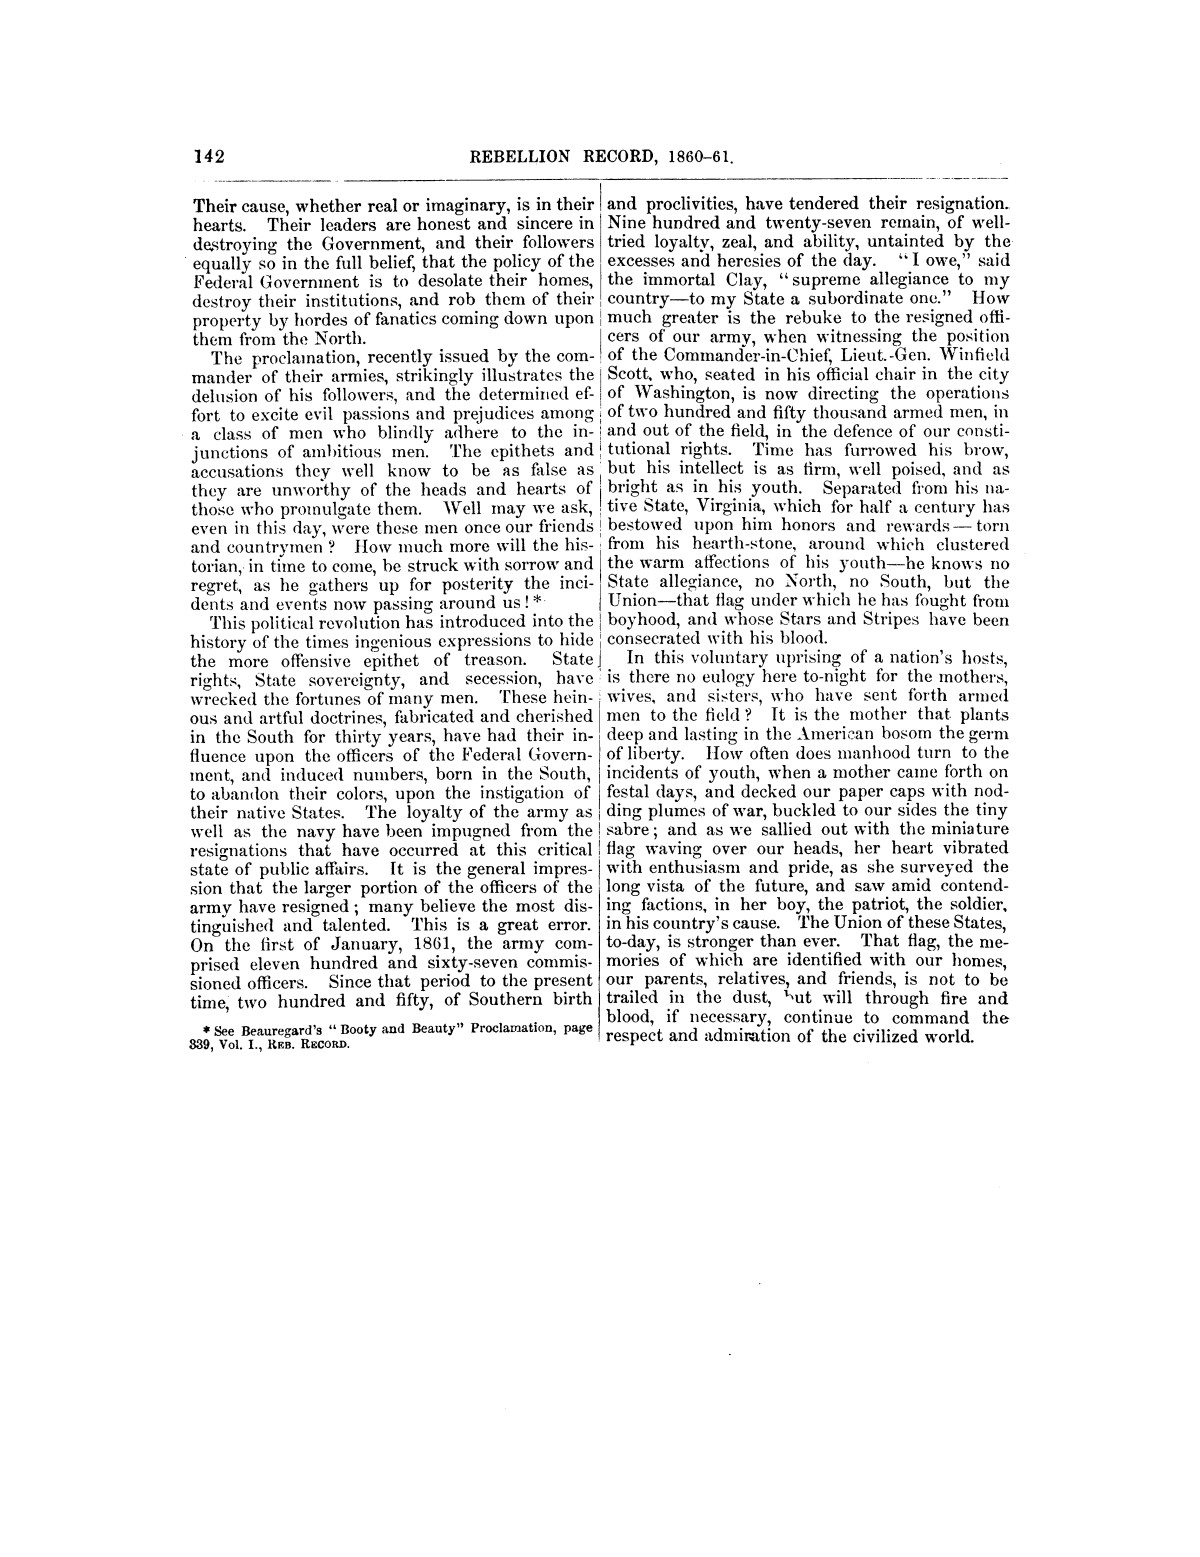 The treachery in Texas, the secession of Texas, and the arrest of the United States officers and soldiers serving in Texas. Read before the New-York Historical Society, June 25, 1861. By Major J. T. Sprague, U. S. A.                                                                                                      [Sequence #]: 36 of 36